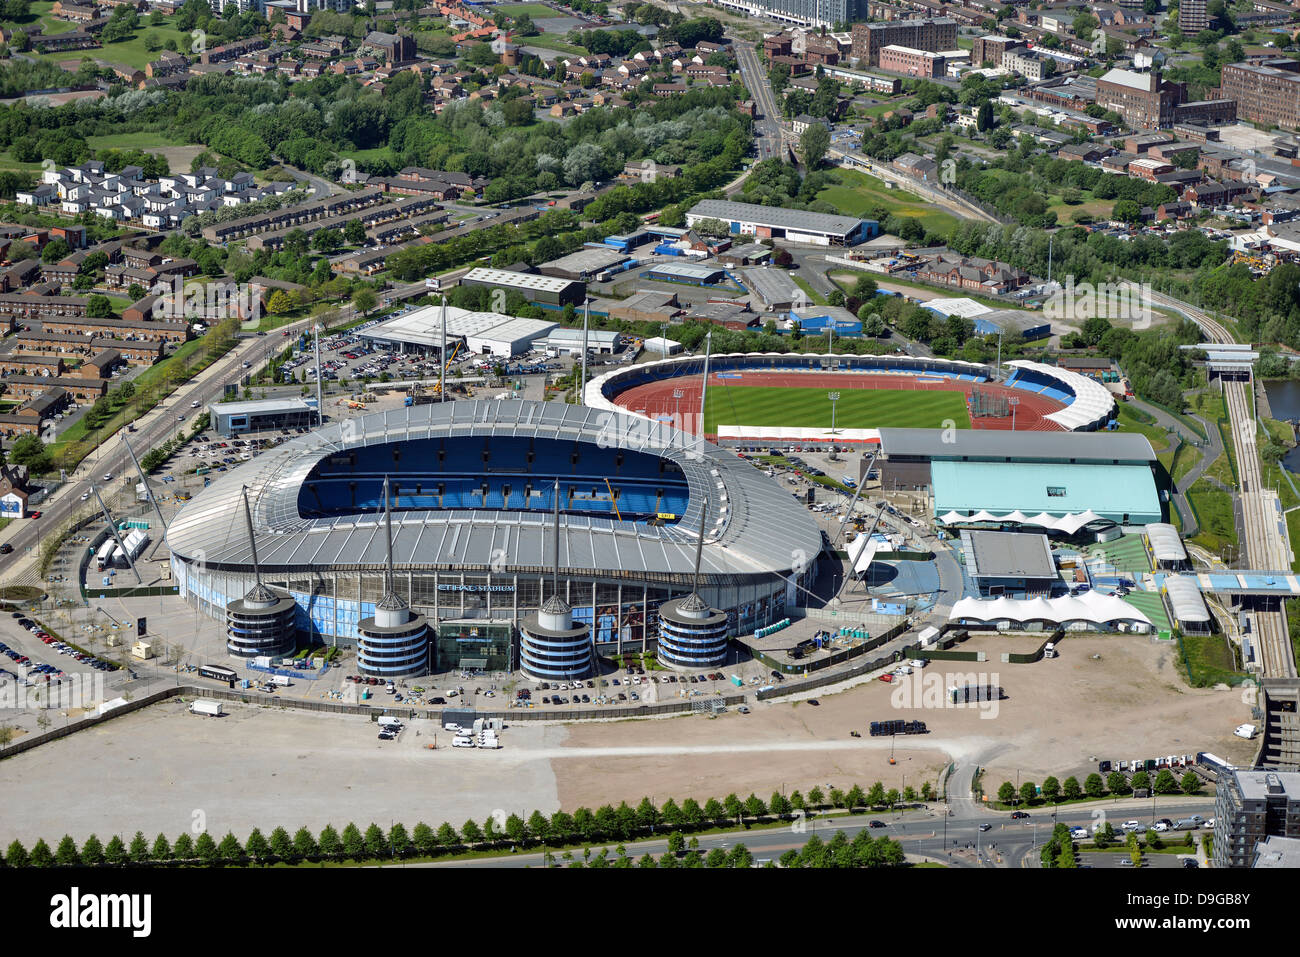 Aerial photograph of Manchester City Football Club - Stock Image